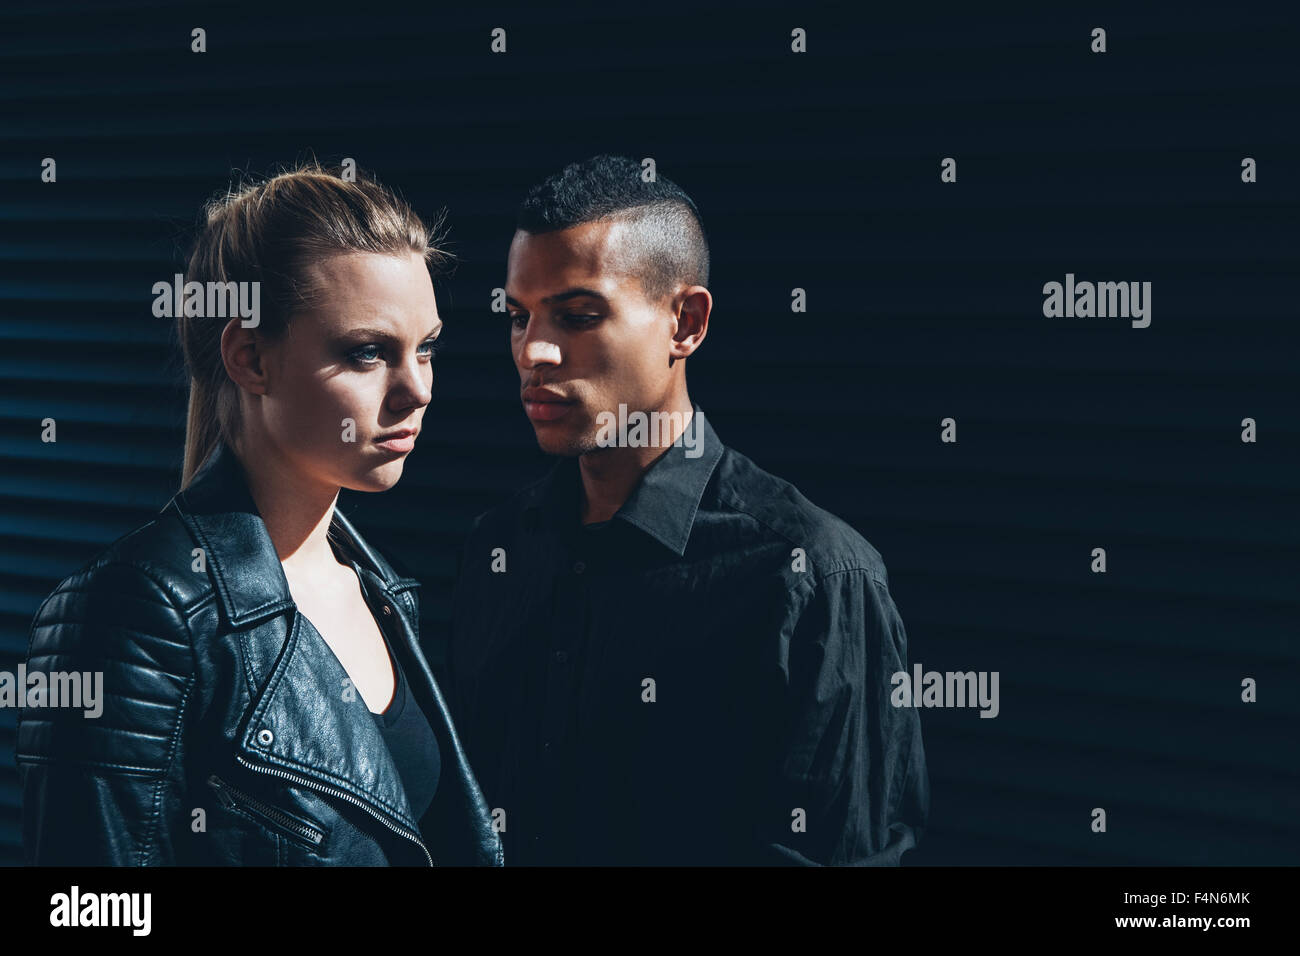 Black dressed young couple standing in front of black facade - Stock Image